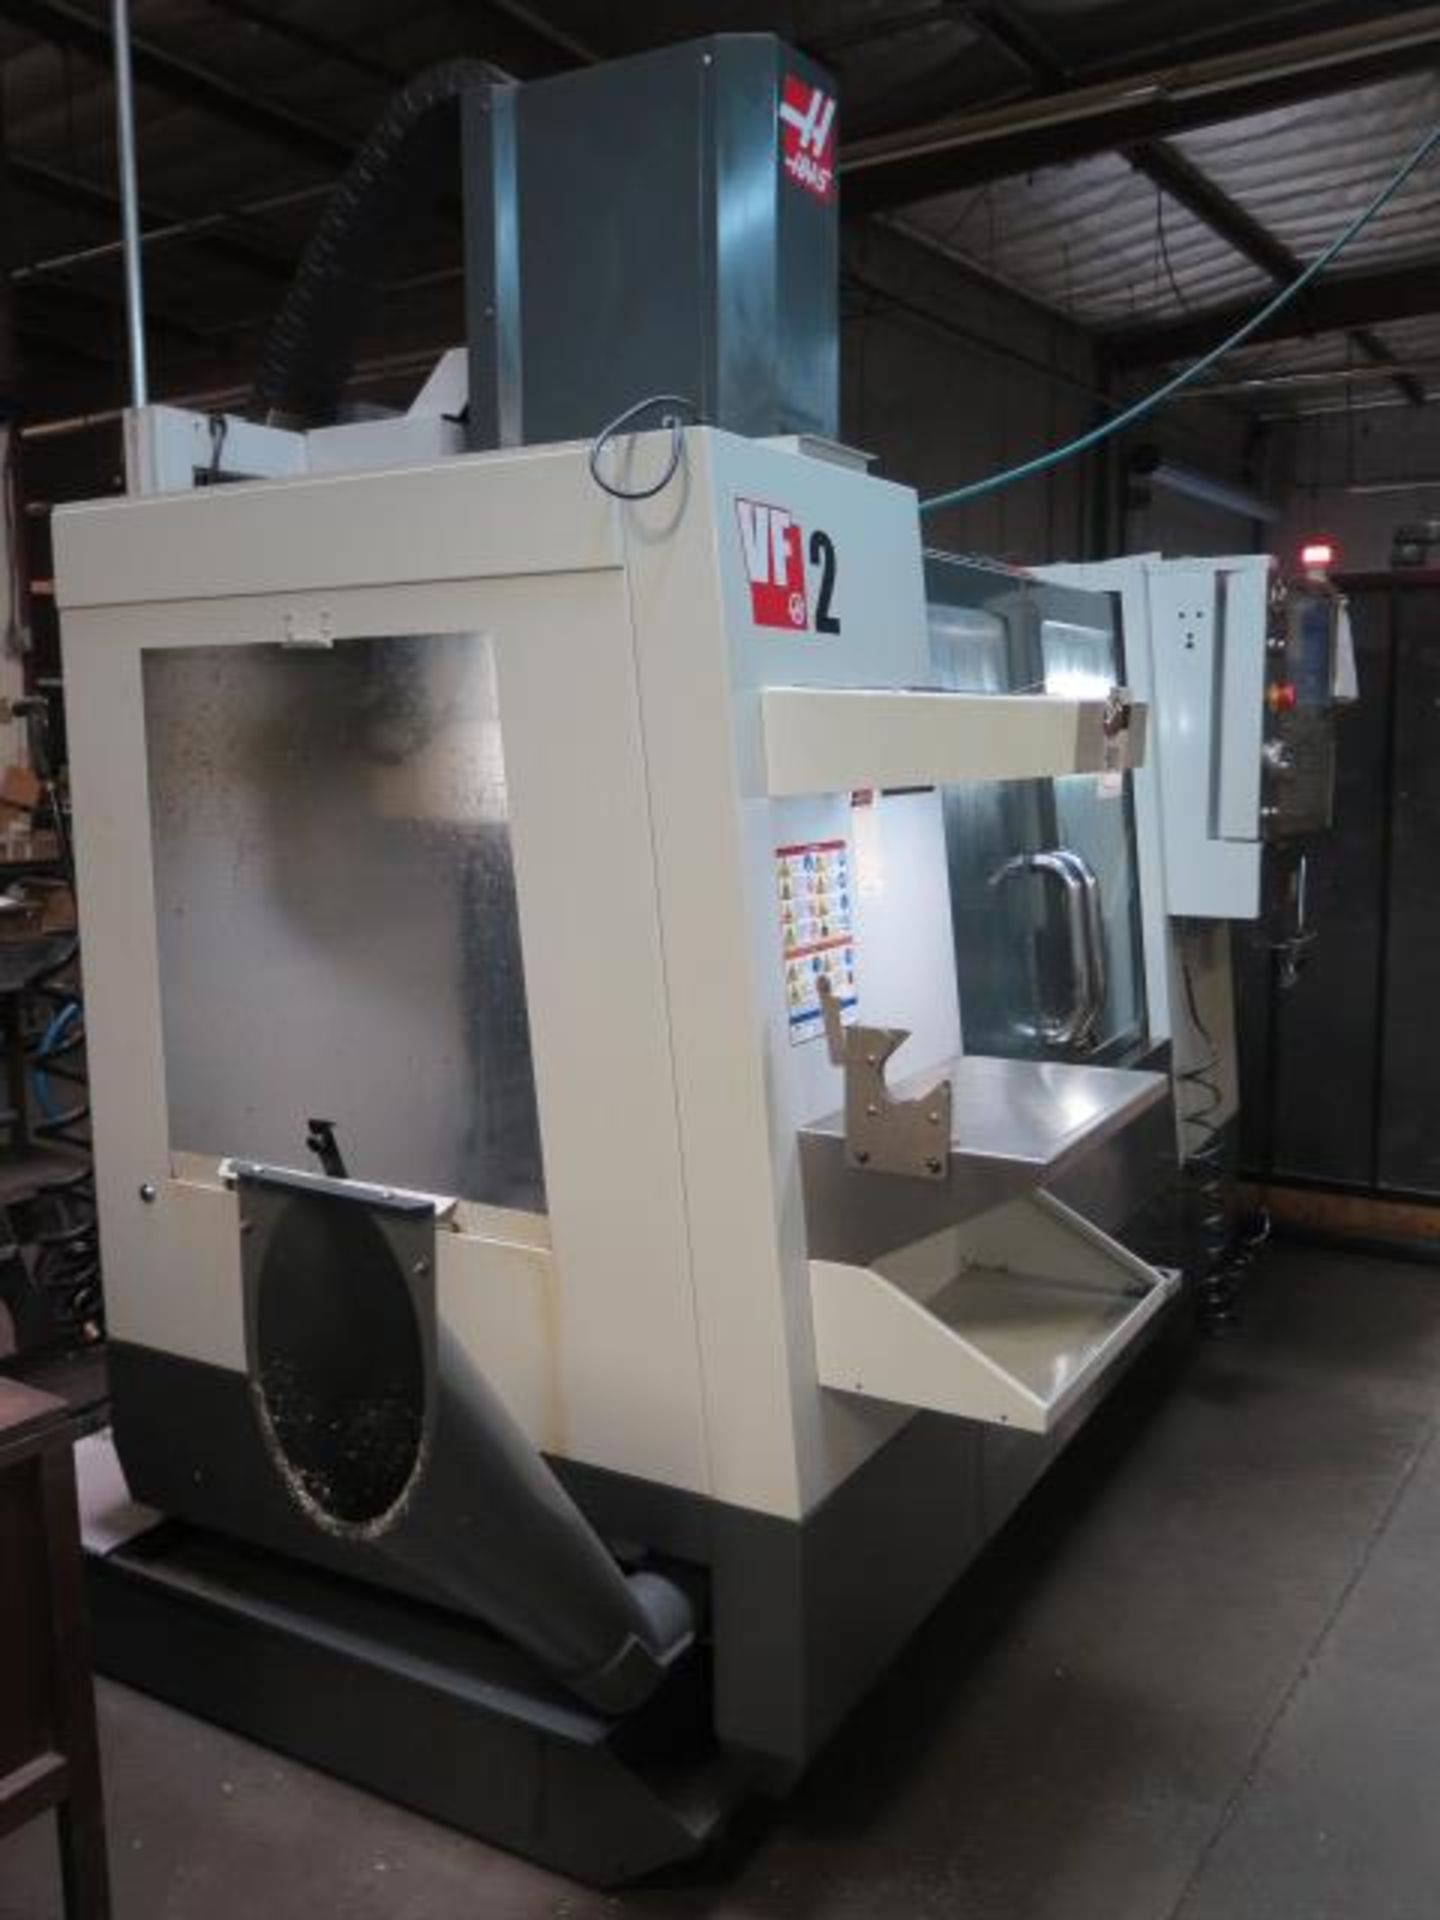 Lot 40 - 2013 Haas VF-2 CNC Vertical Machining Center s/n 1102921 w/ Haas Controls, 20-Station ATC, CAT-40